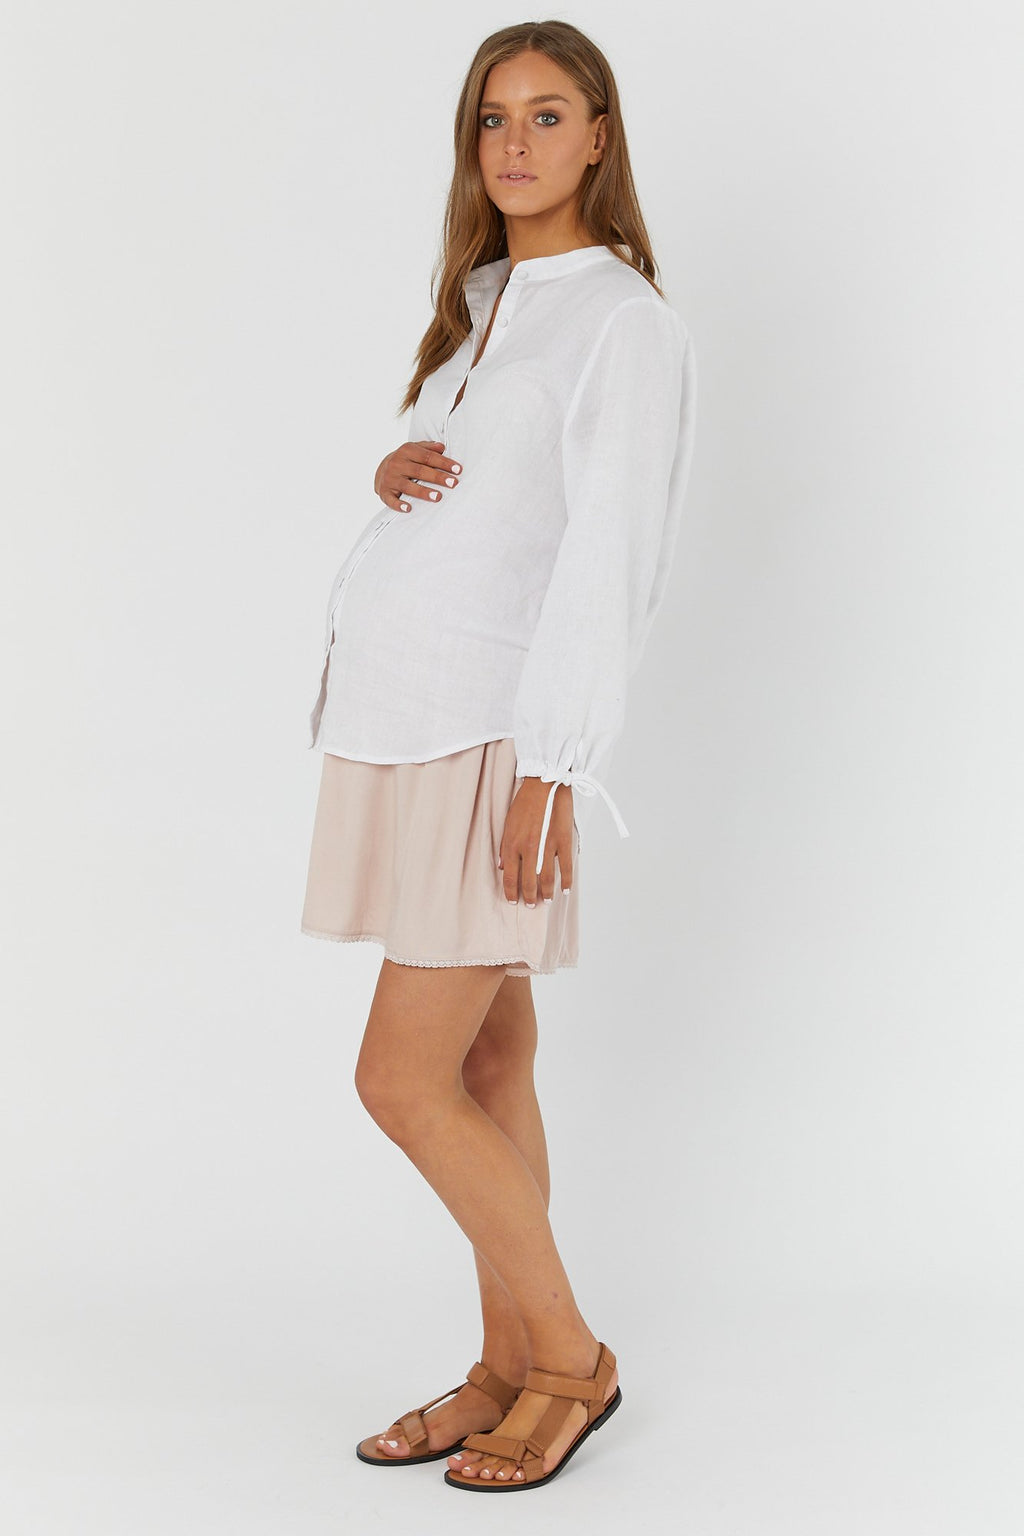 maternity + nursing shirt | the linen shirt | white - MUMMA + BUBBA COLLECTIVE